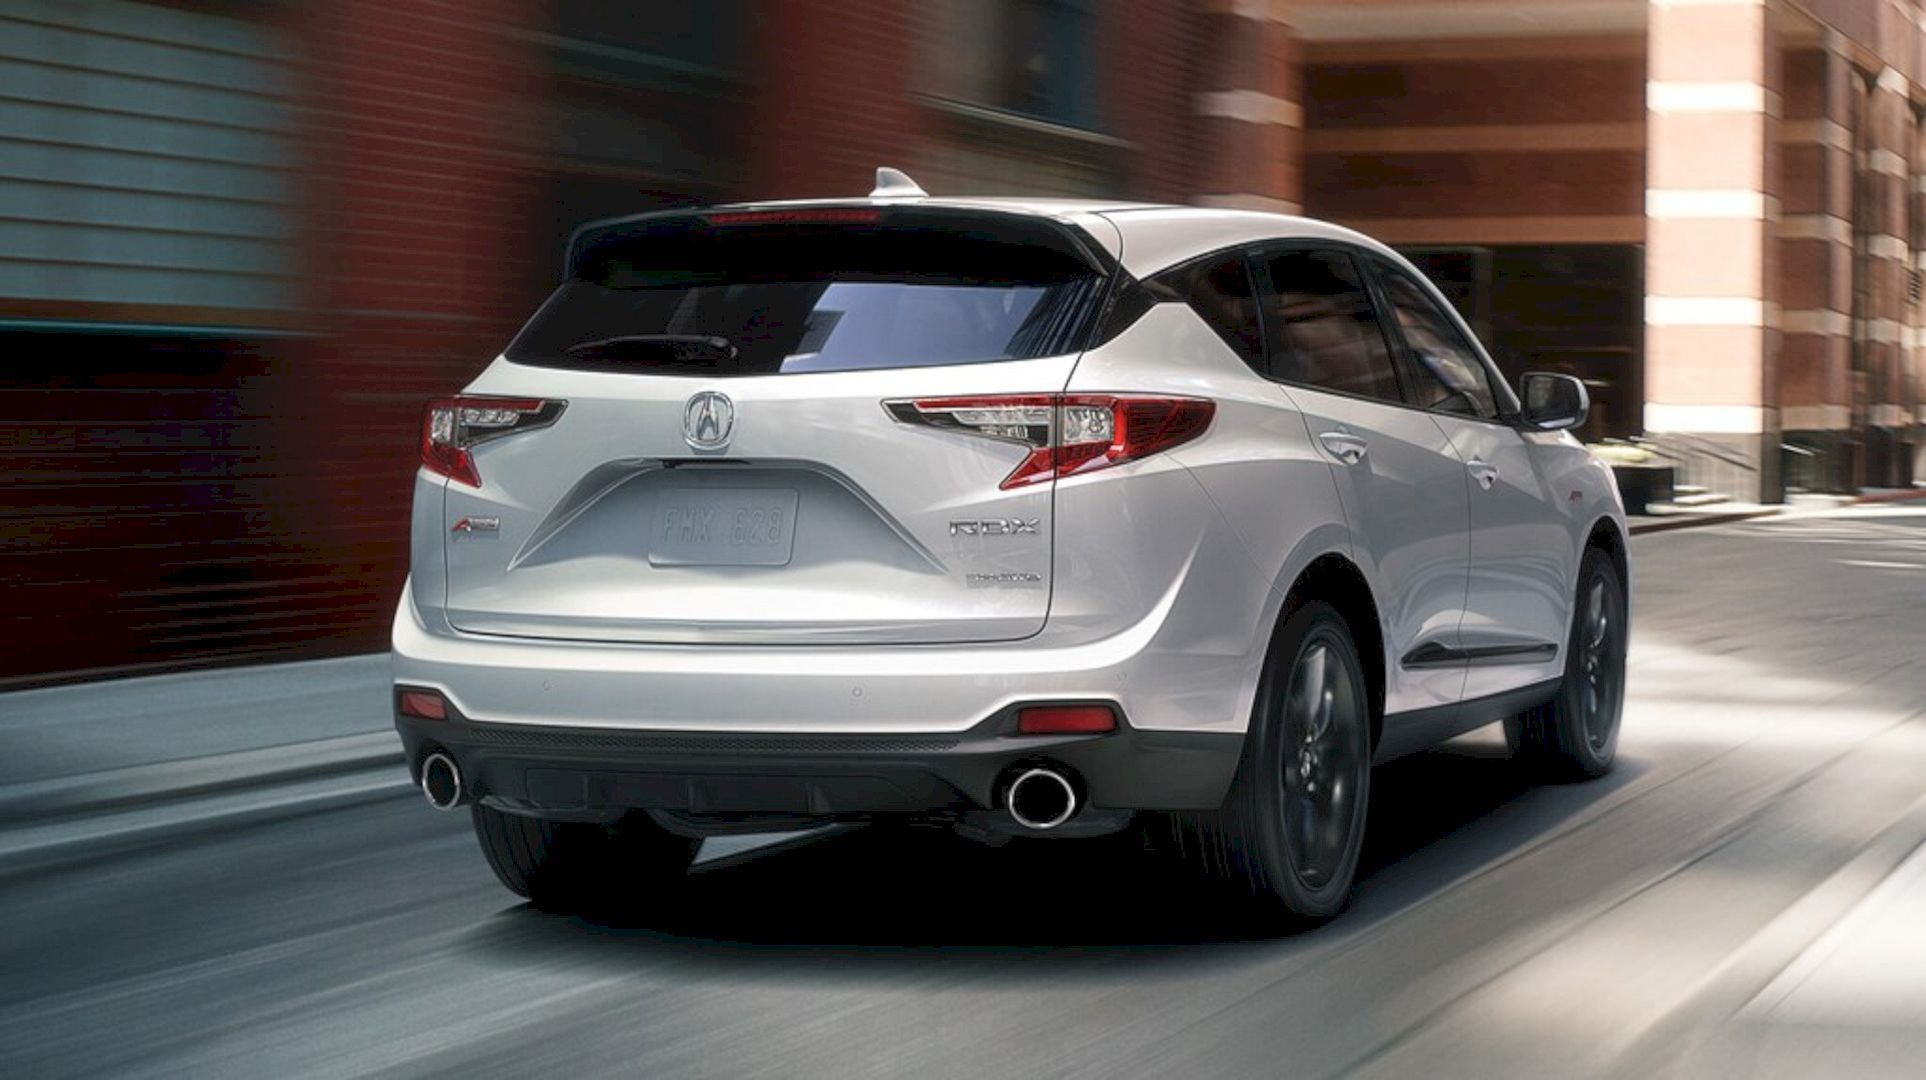 2019 Acura Rdx The Luxury Crossover With Personality Acura Rdx Luxury Crossovers Acura